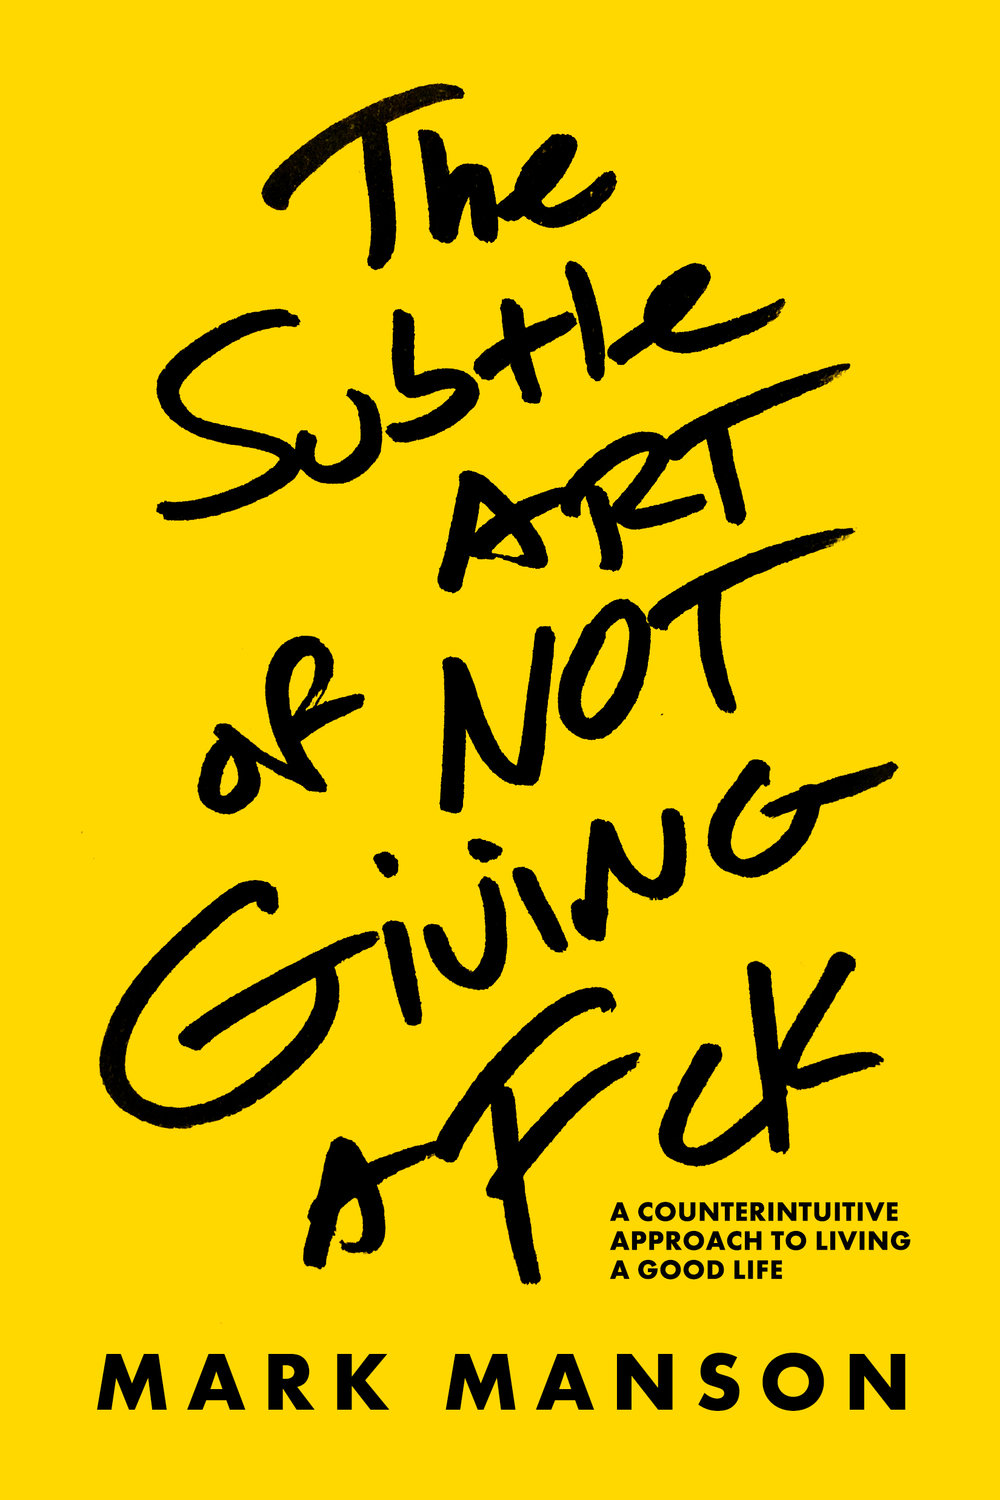 The Subtle Art of Not Giving a F*ck by Mark Manson Designed by Ben Mautner for One Hour Covers